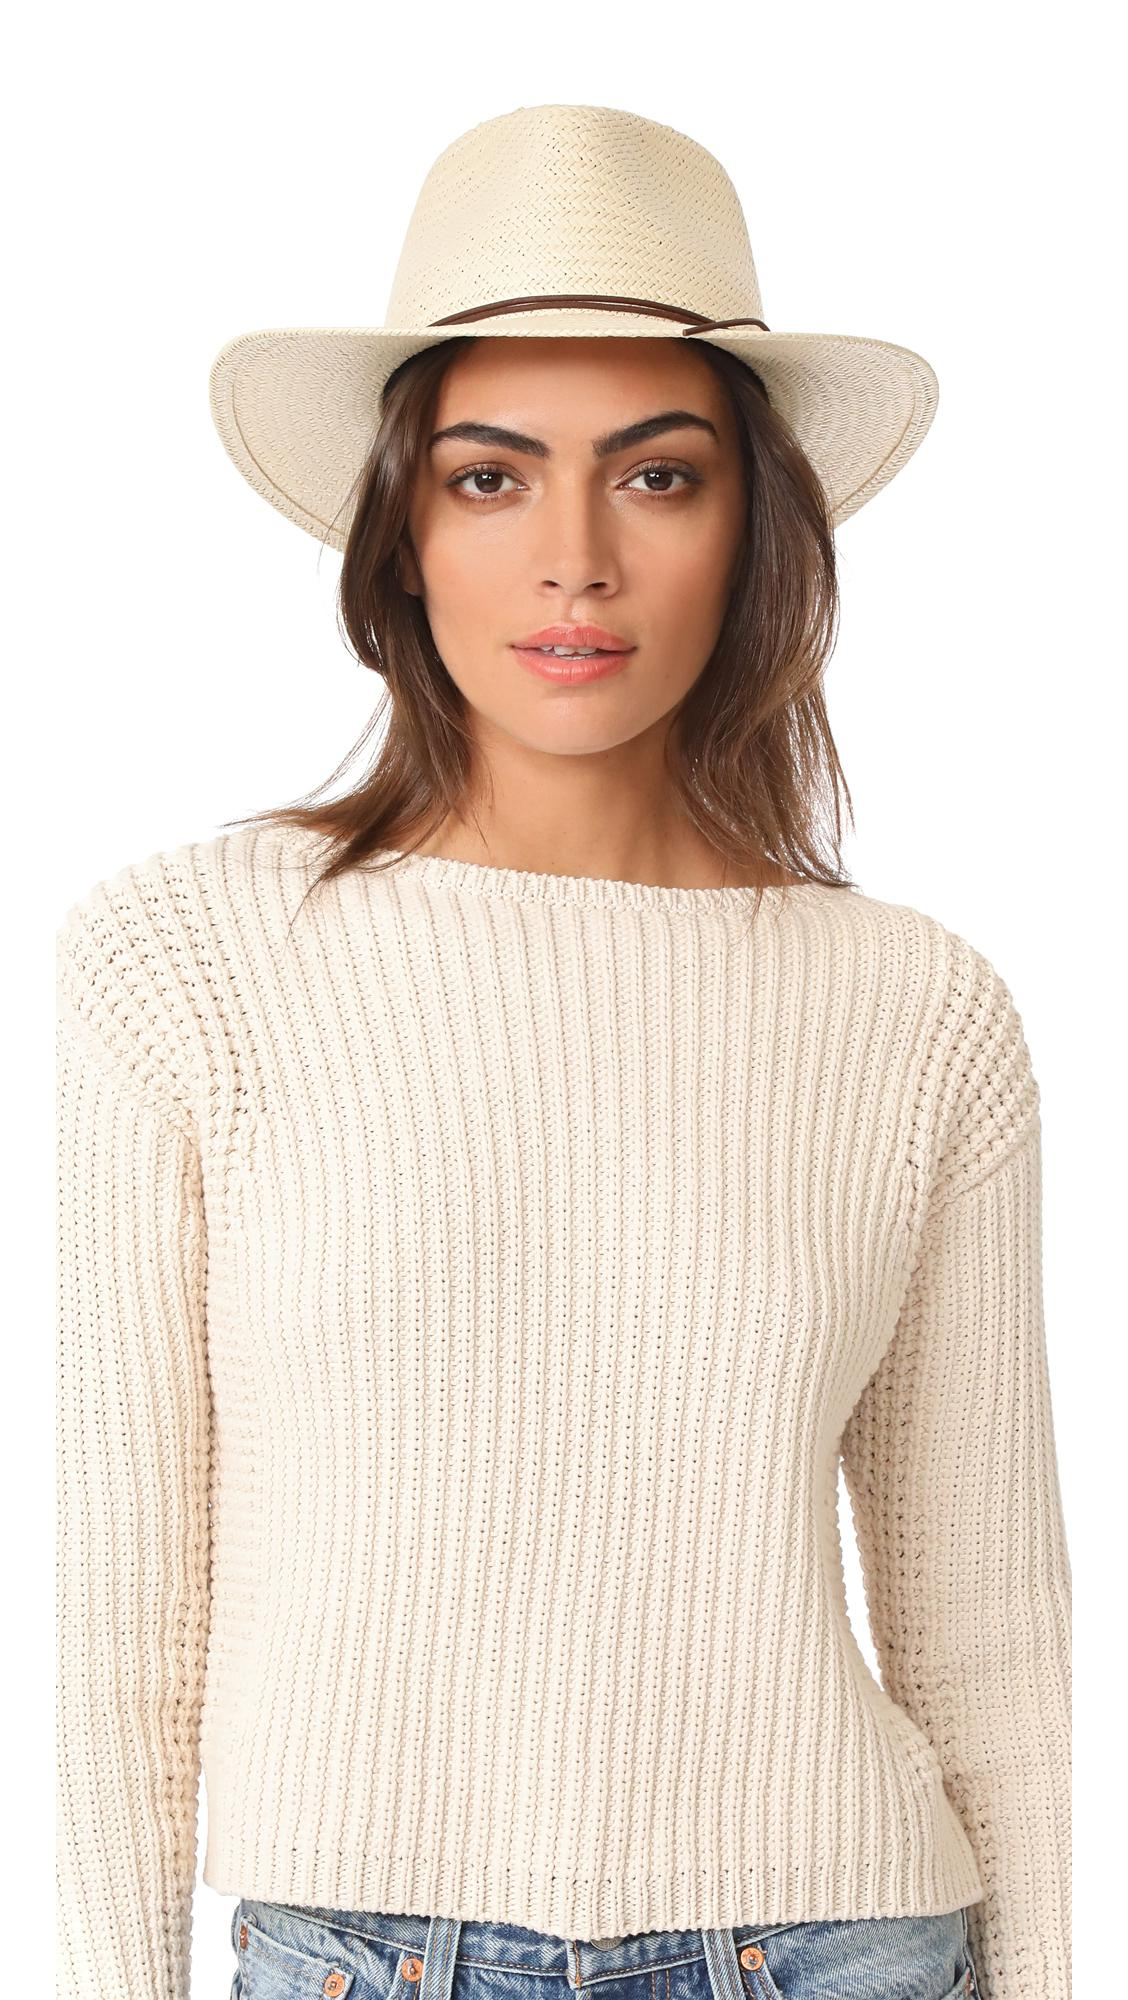 f2258ab8 Rag & Bone Packable Straw Fedora in Natural - Lyst